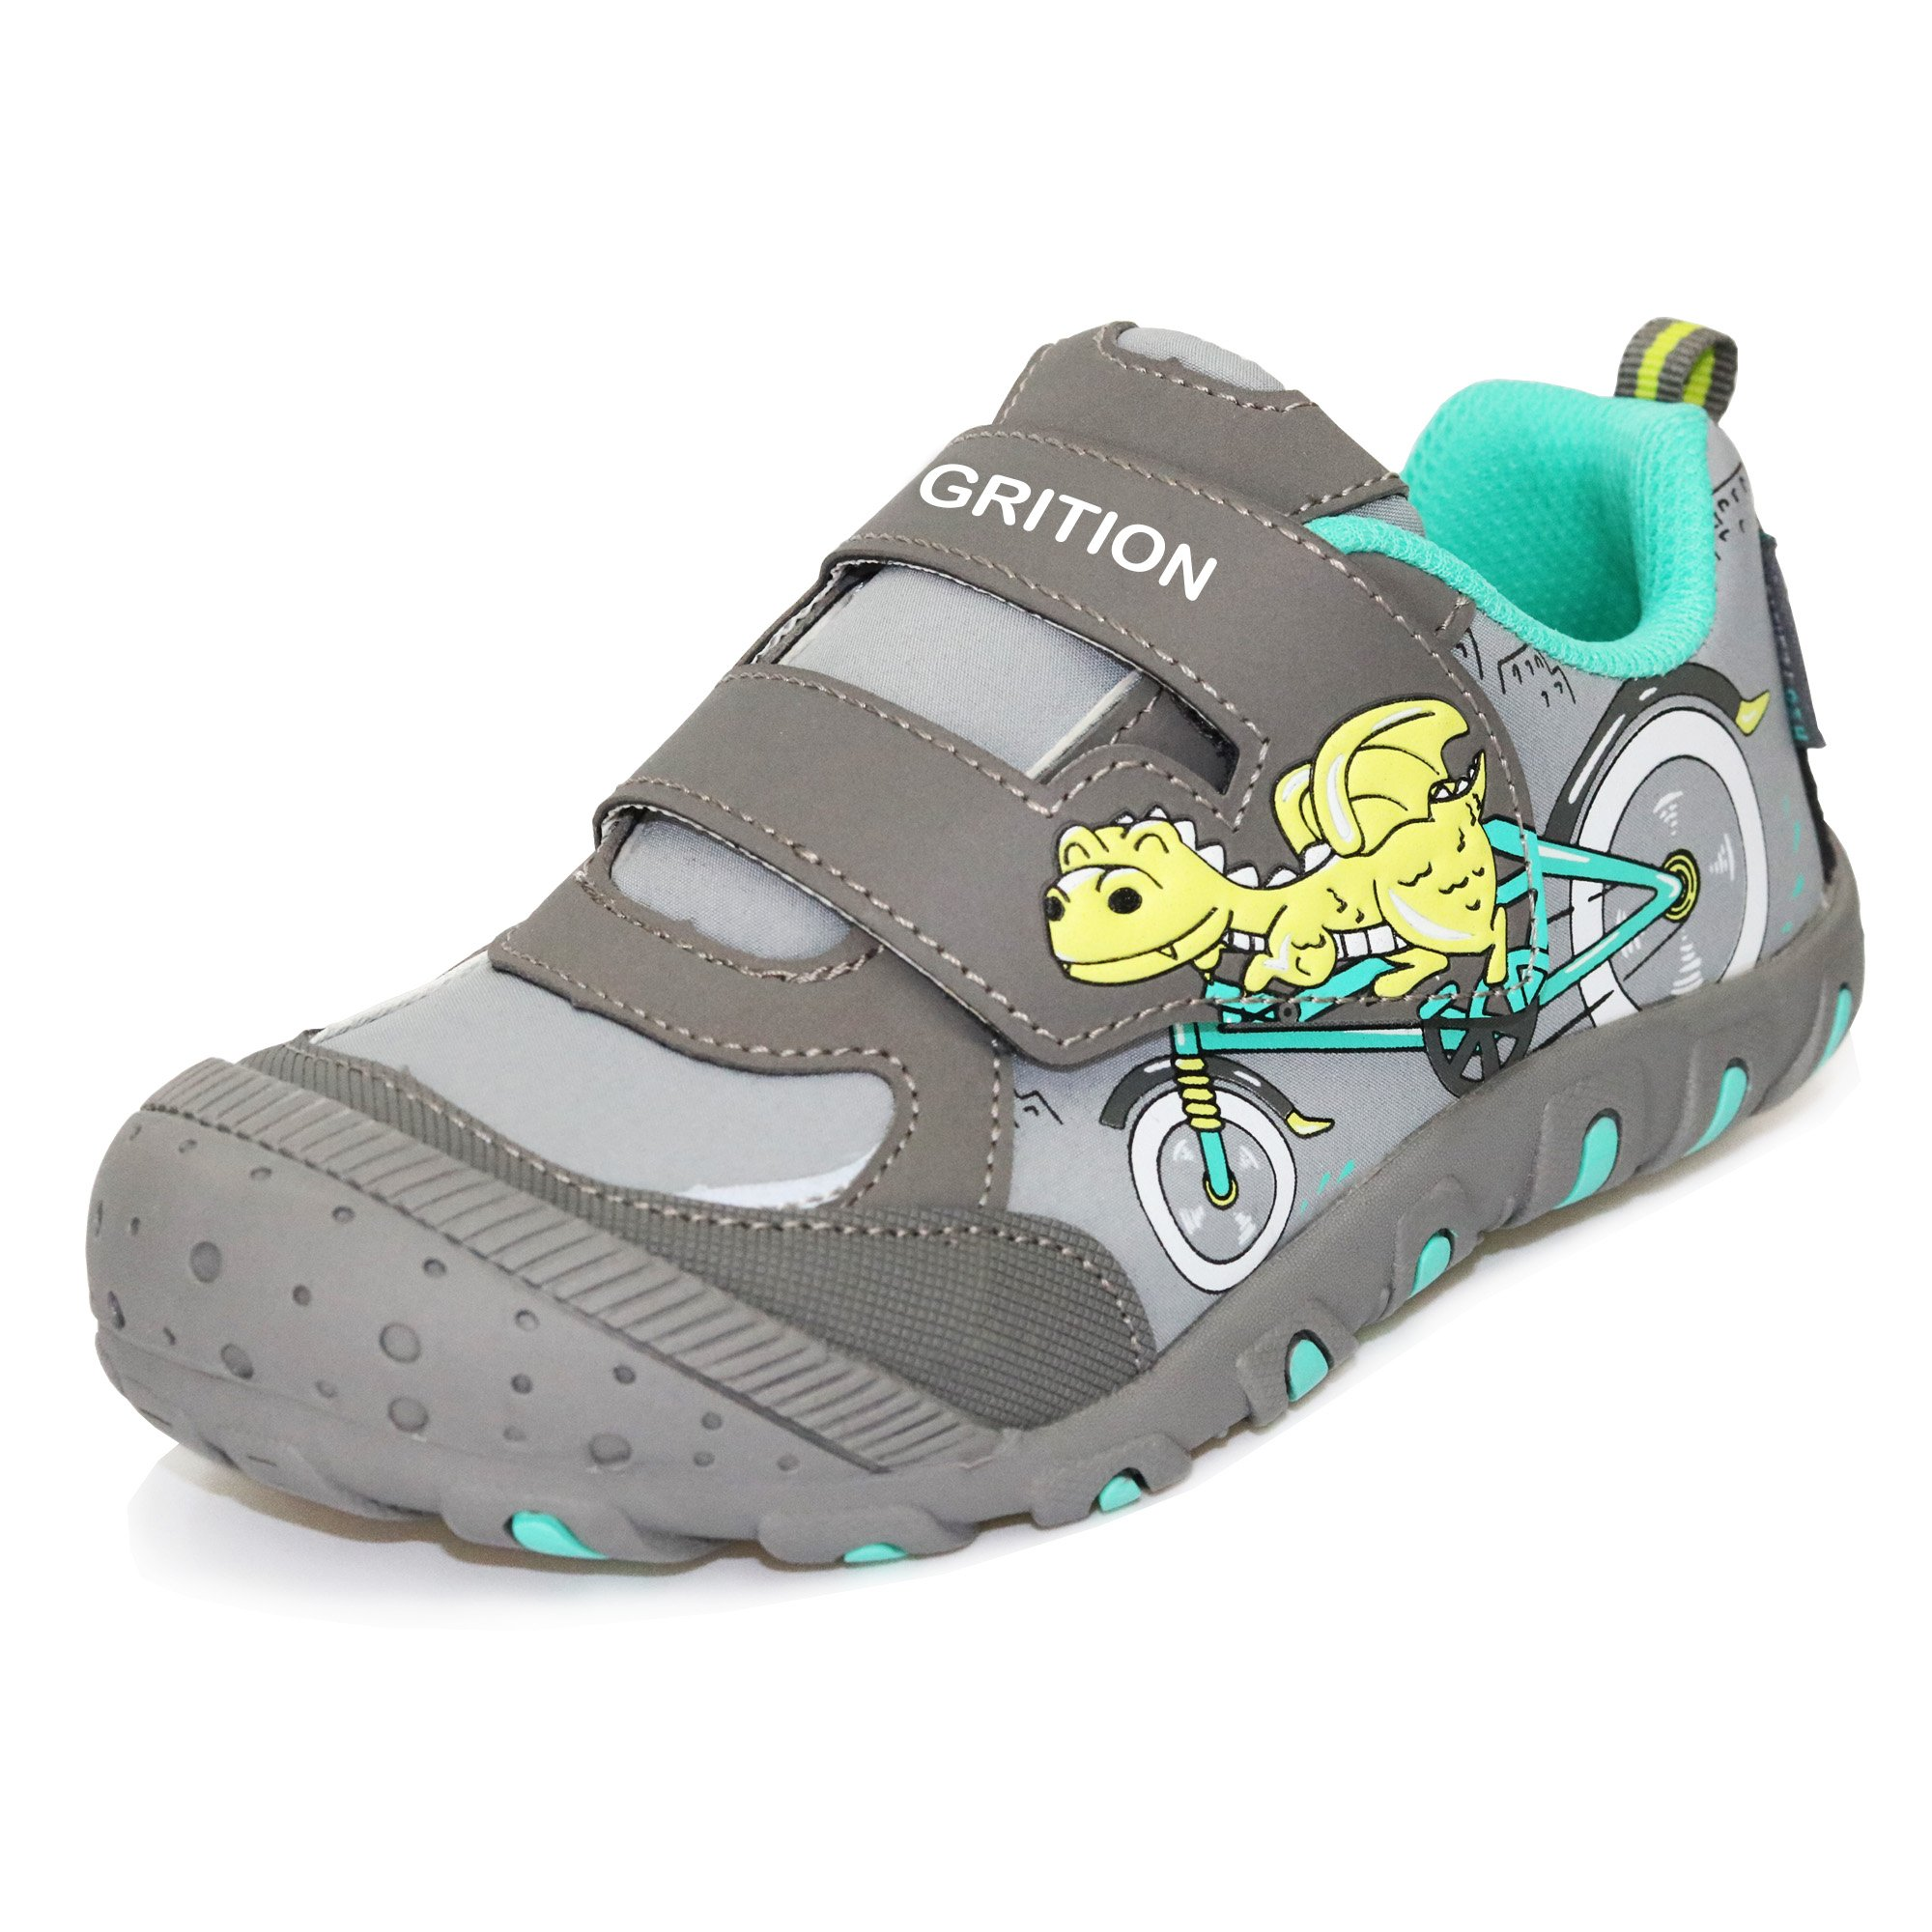 GRITION Mid Kids School Shoes, Dinosaur Riding Bike Cartoon Sneakers for Boys Girls Easy Hook and Loop Walking Running Water Resistant Shoes Black Gray Unisex Child (3 M Little Kid/EU 35, Gray)